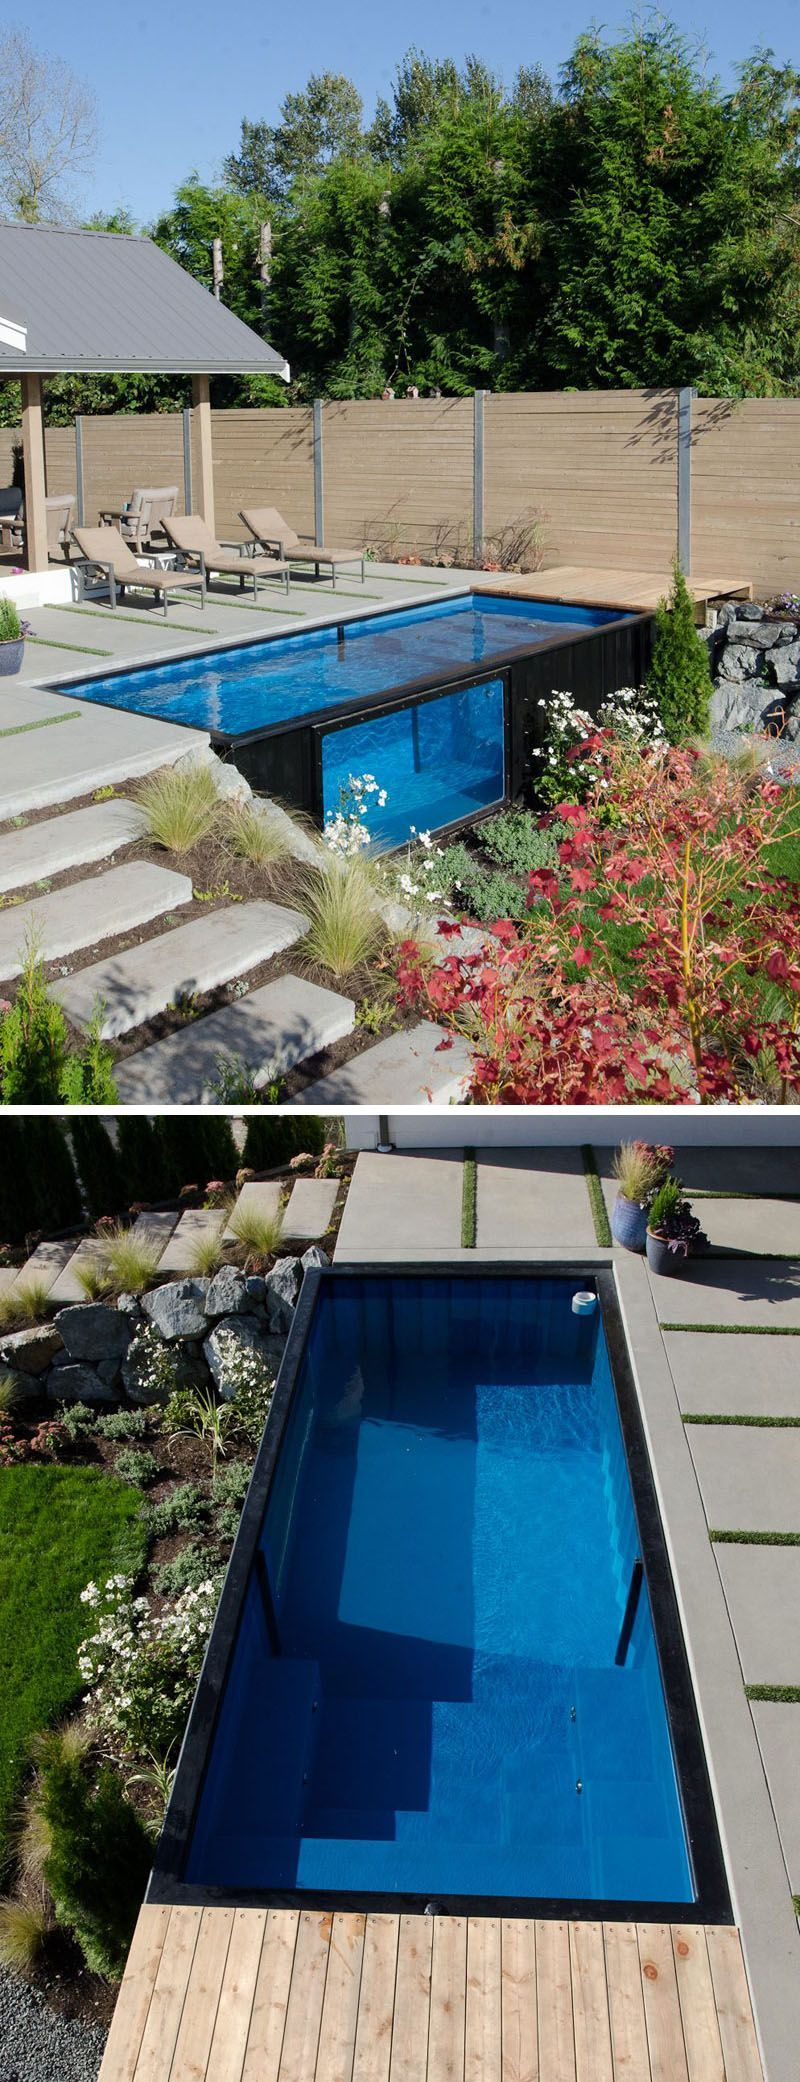 Modpools have transformed shipping containers into modern swimming ...